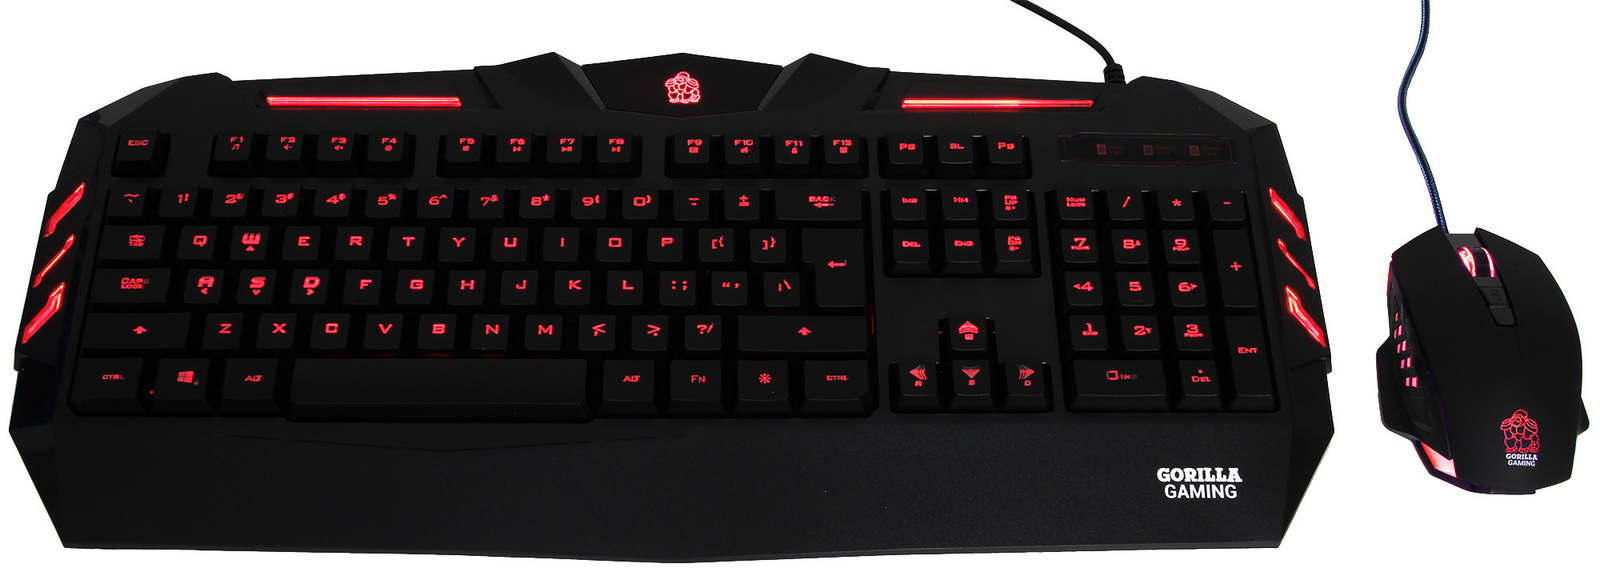 Gorilla Gaming Predator Gaming Combo (Red) for PC Games image